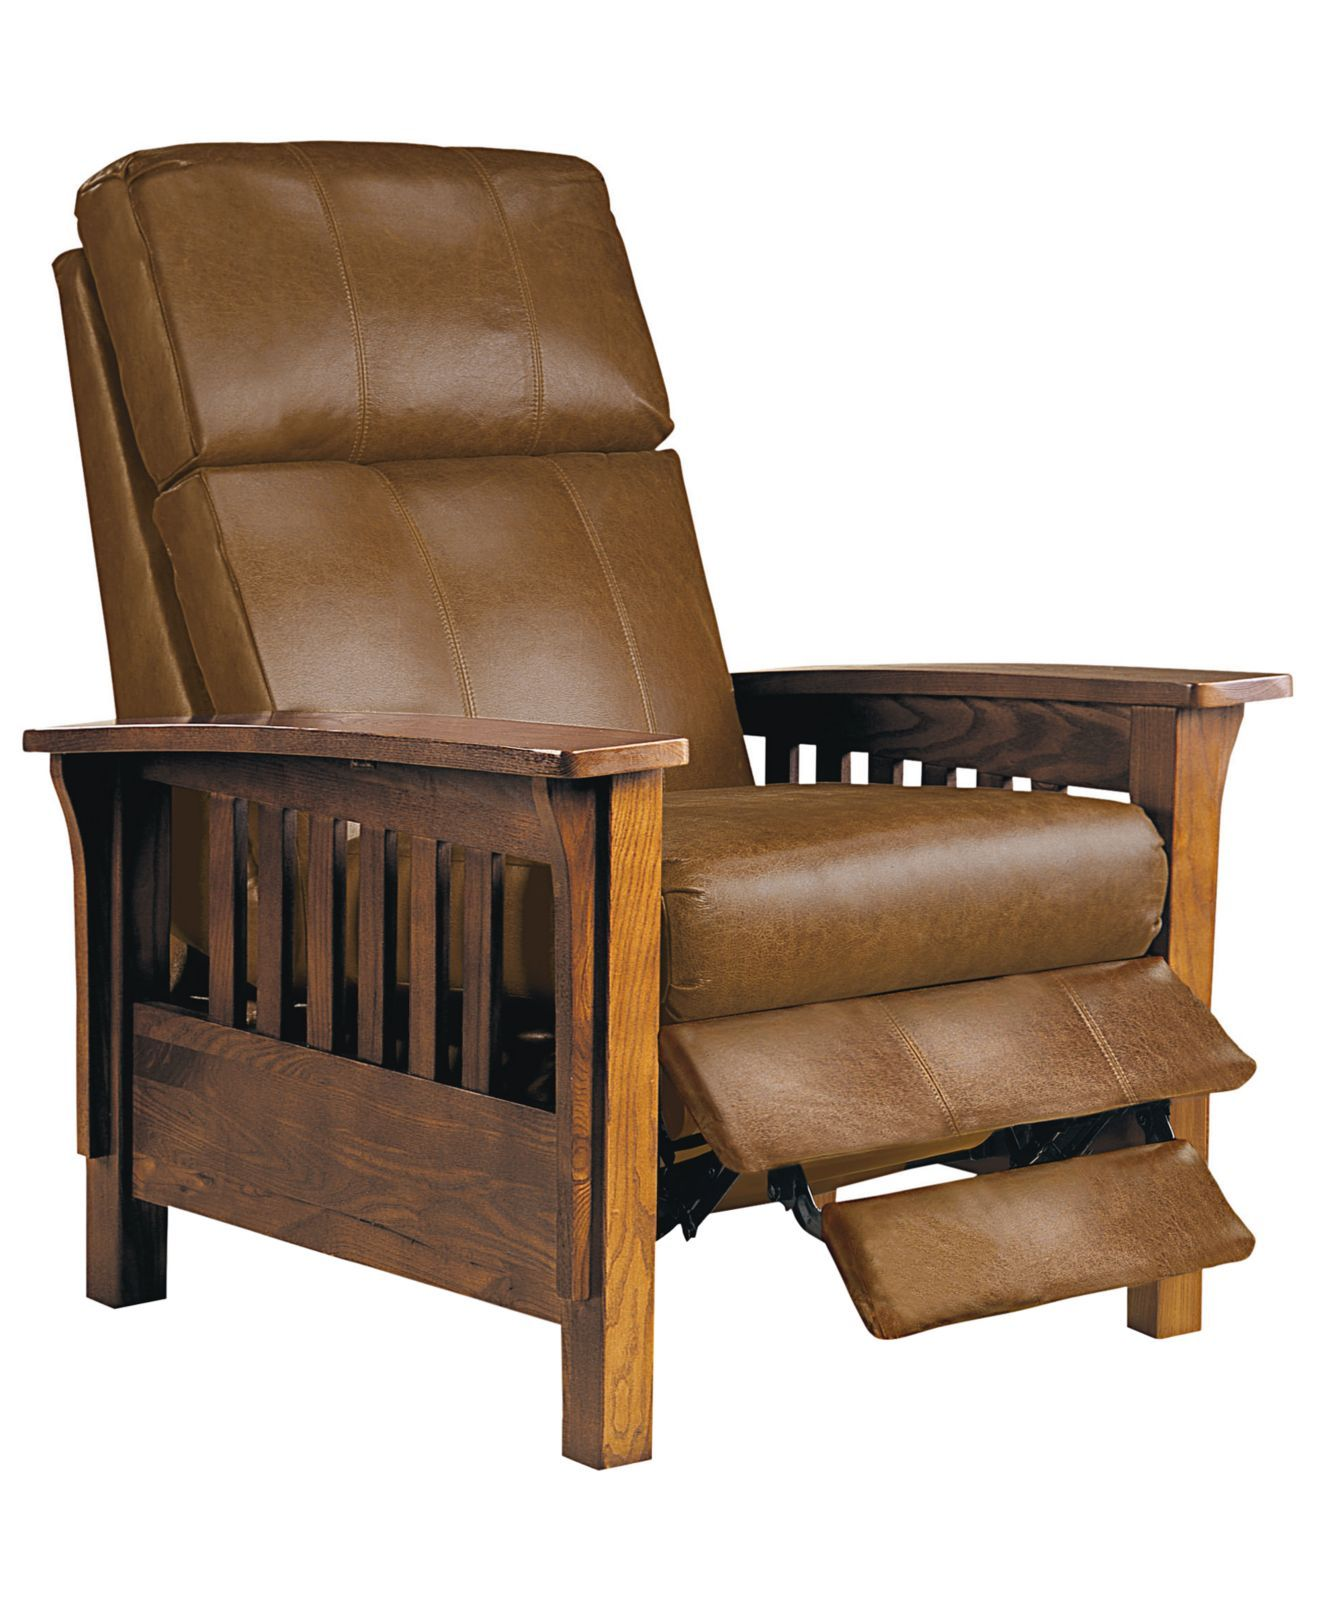 Nicolas Ii Mission Style Leather Recliner Chair 33 W X 40 D 41 H Chairs Recliners Furniture Macy S